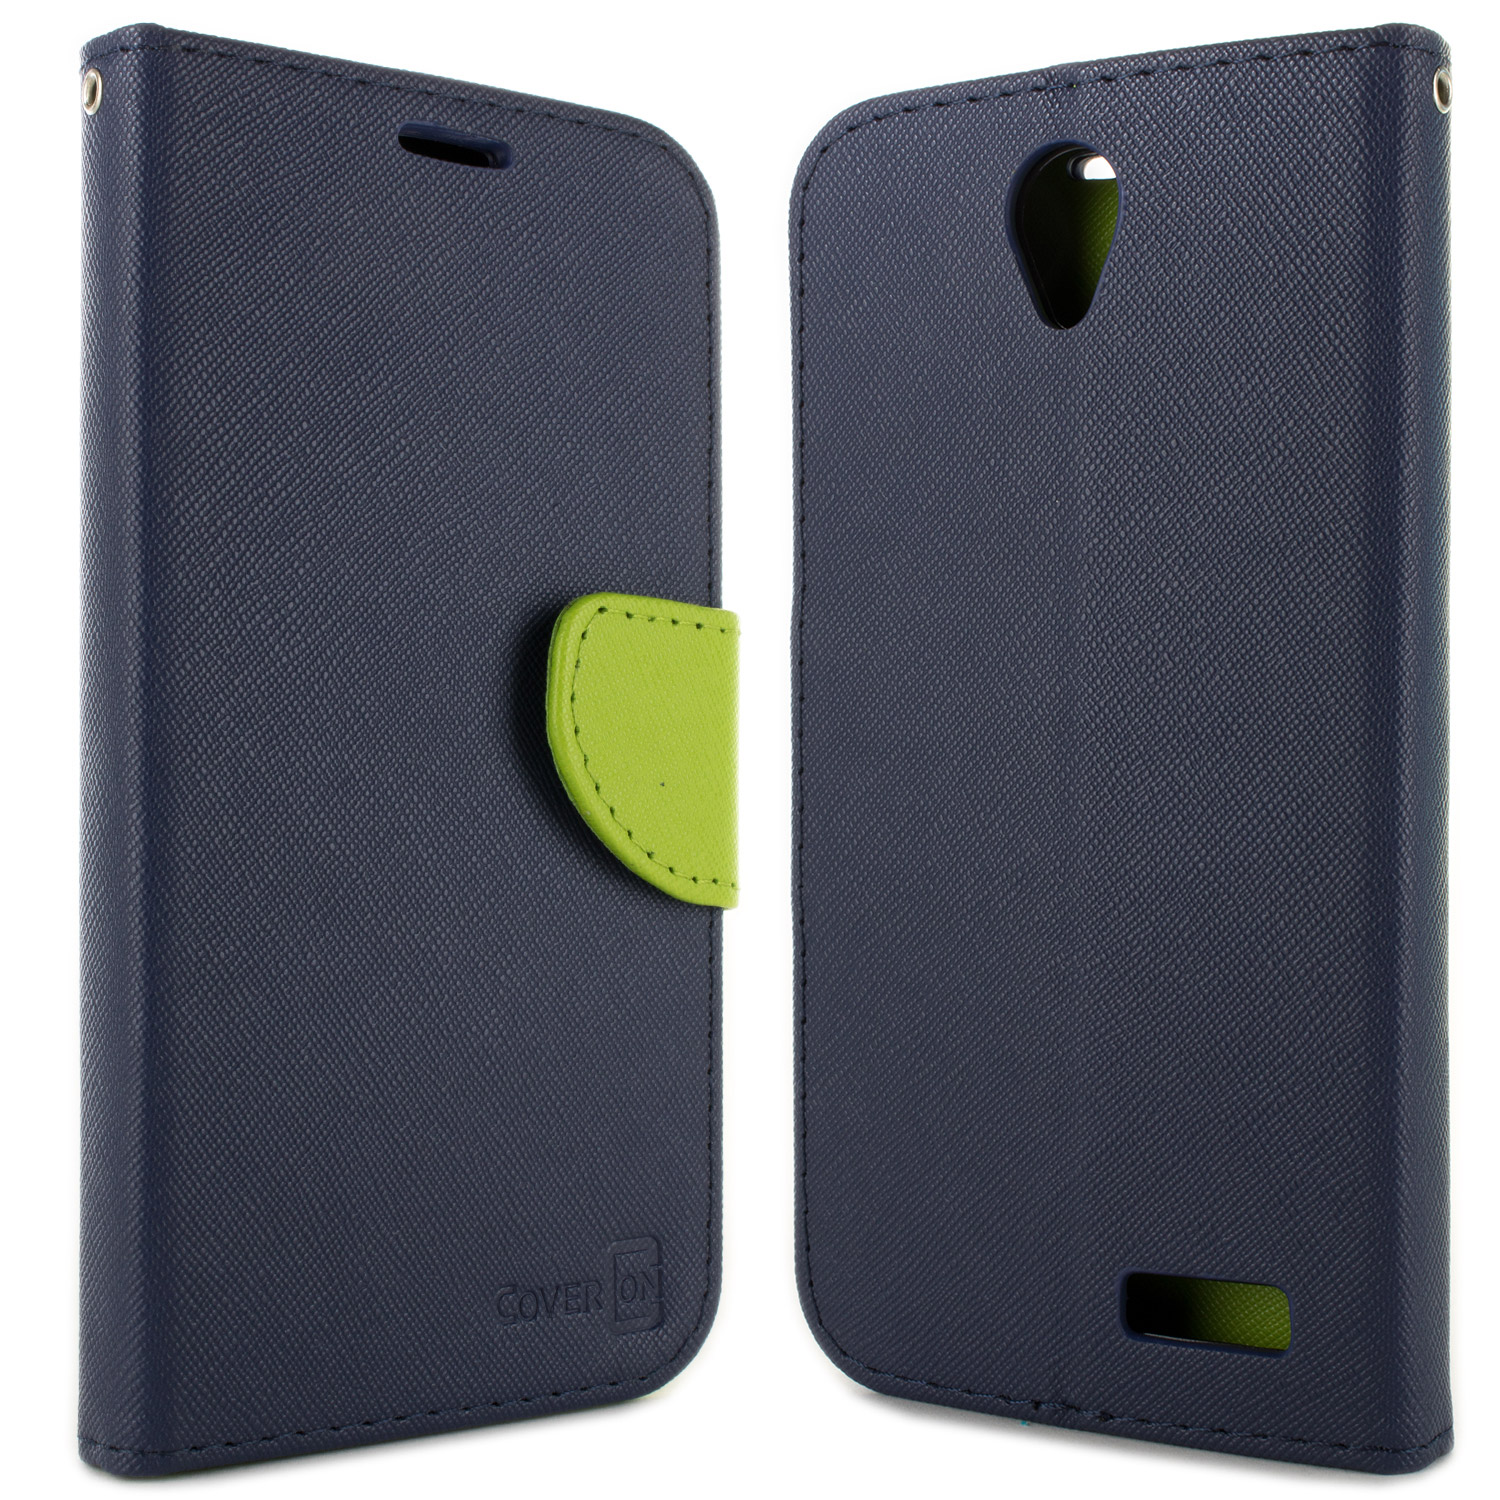 was zte zmax champ case has the